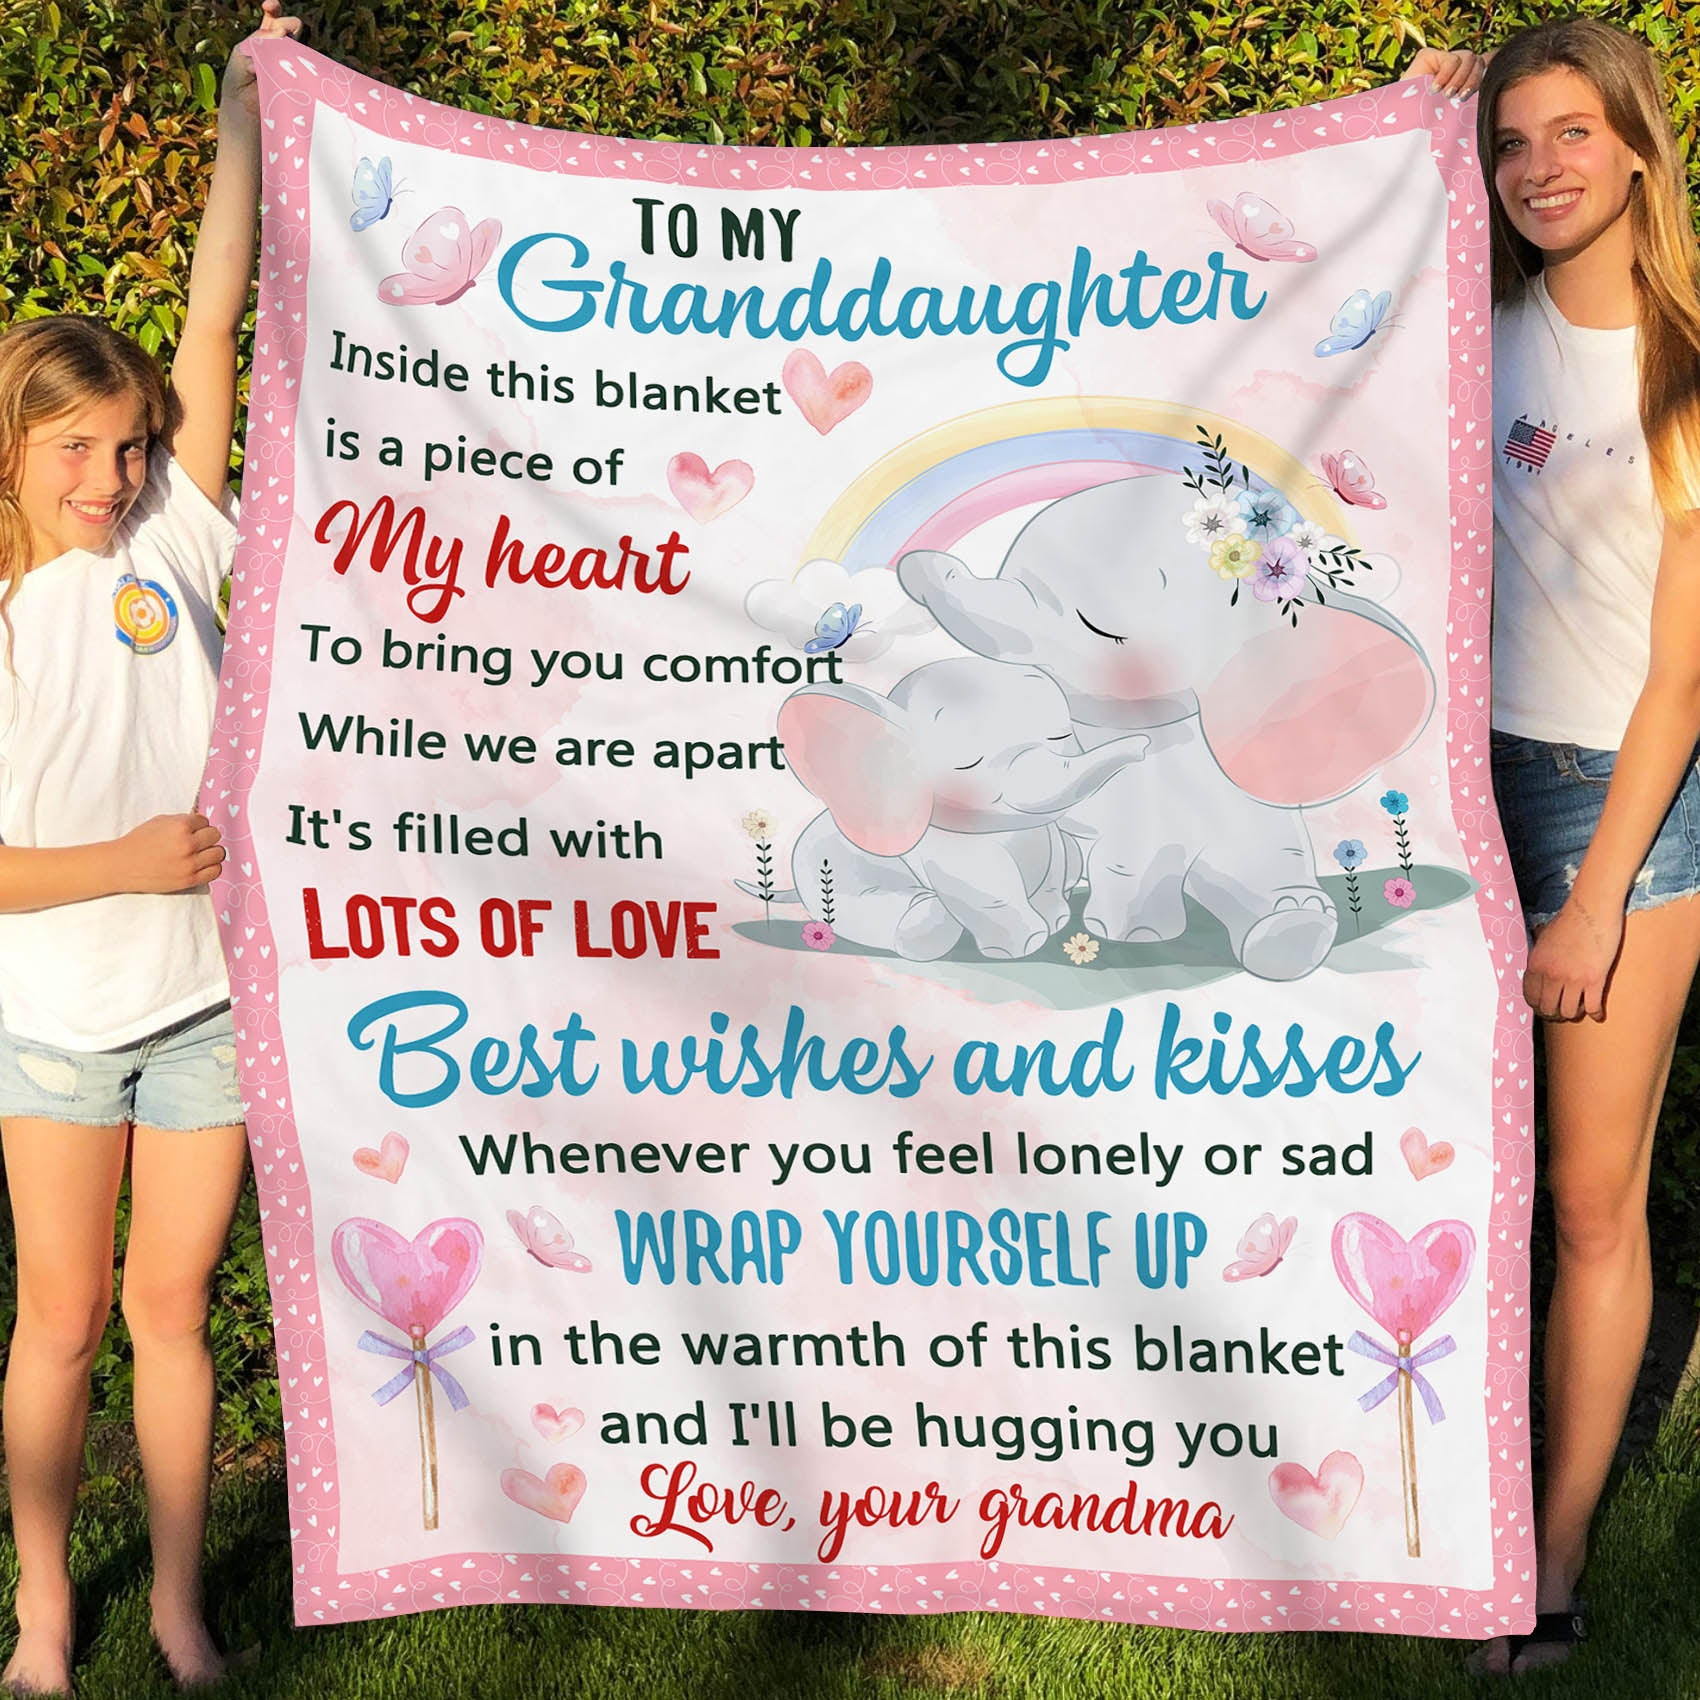 To my granddaughter fleece Blanket - I'll be hugging you - Gifts for Granddaughter from grandma - 4631